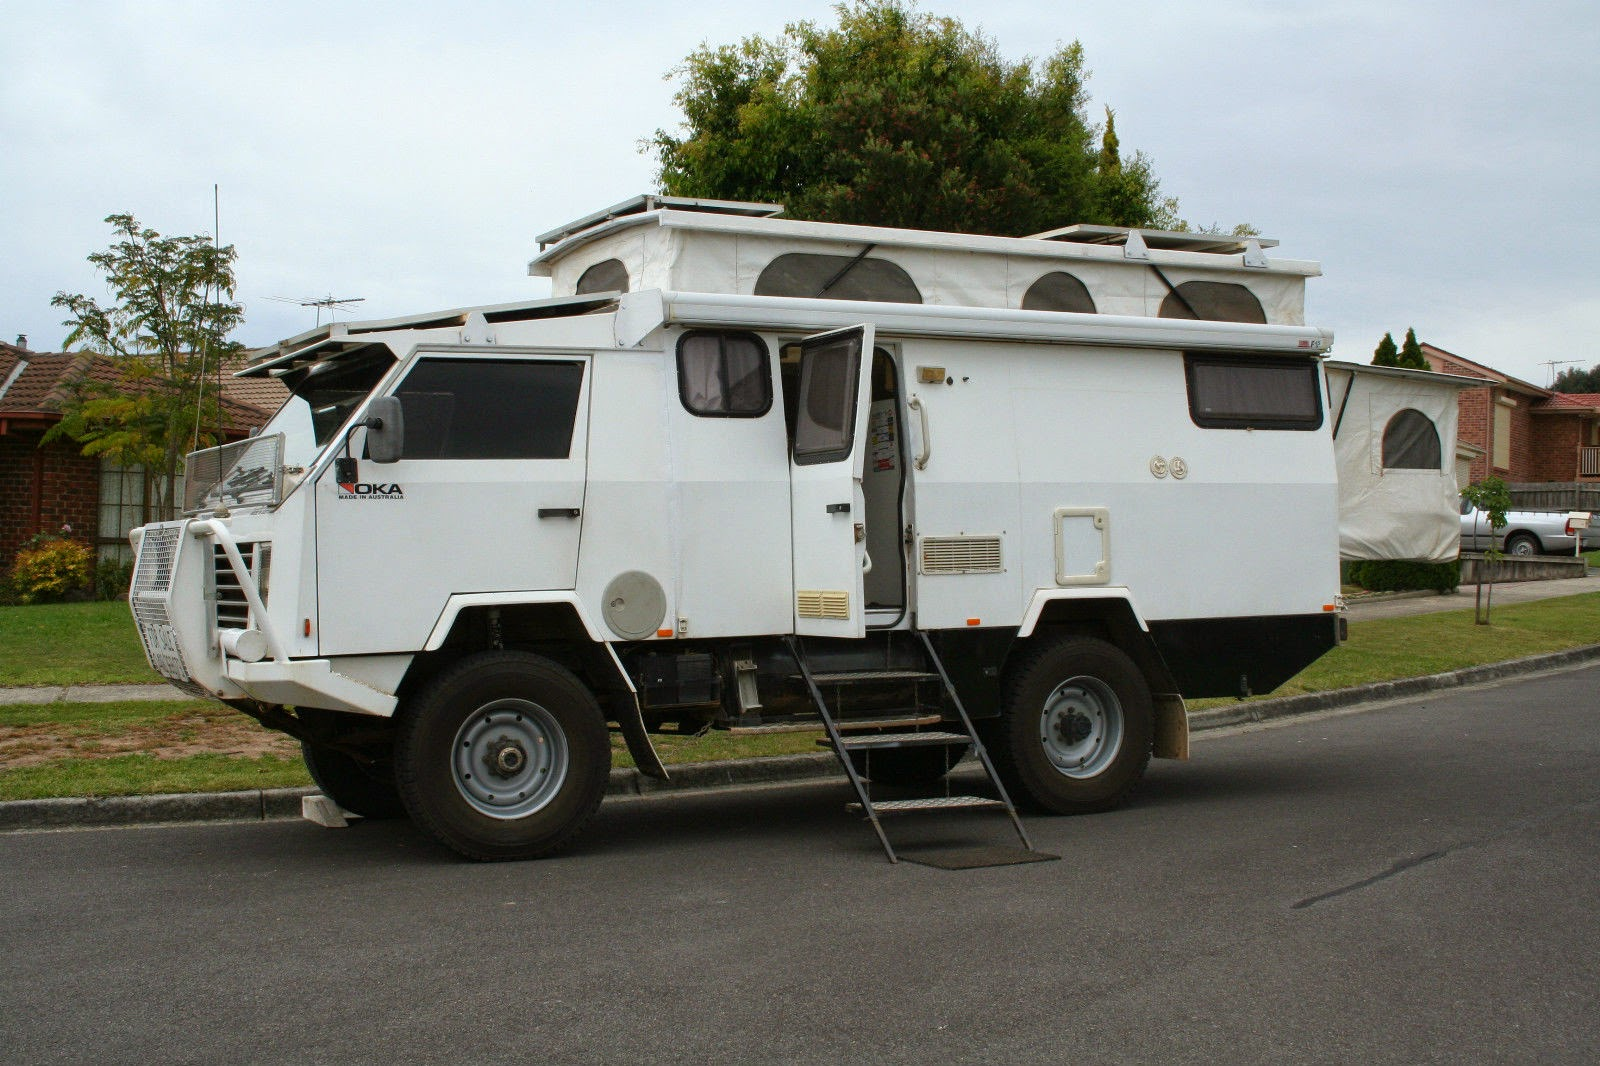 Cool Iveco Truck And Bushtracker Off Road Caravan Australia  Iveco Amp Expedi